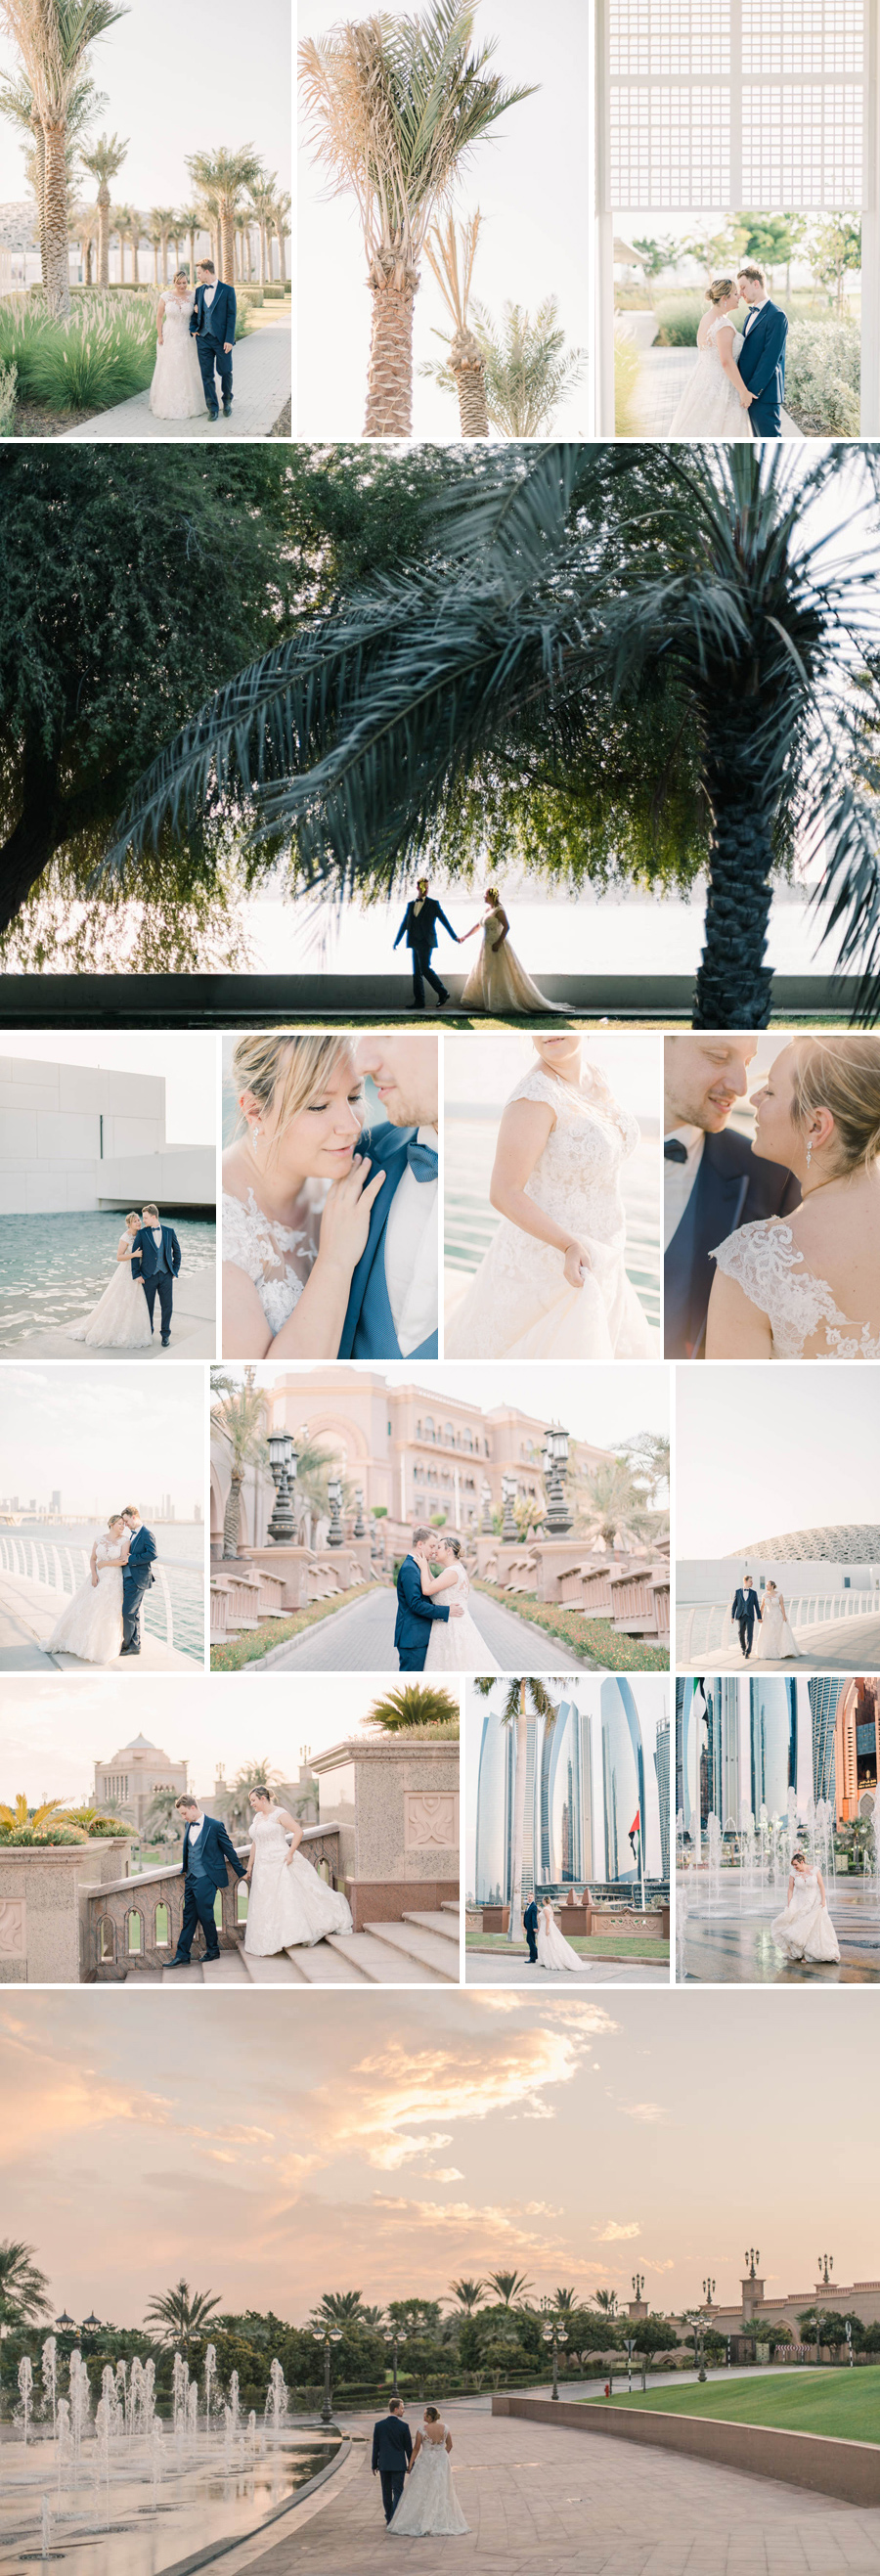 wedding photographer abu dhabi emirates palace louvres